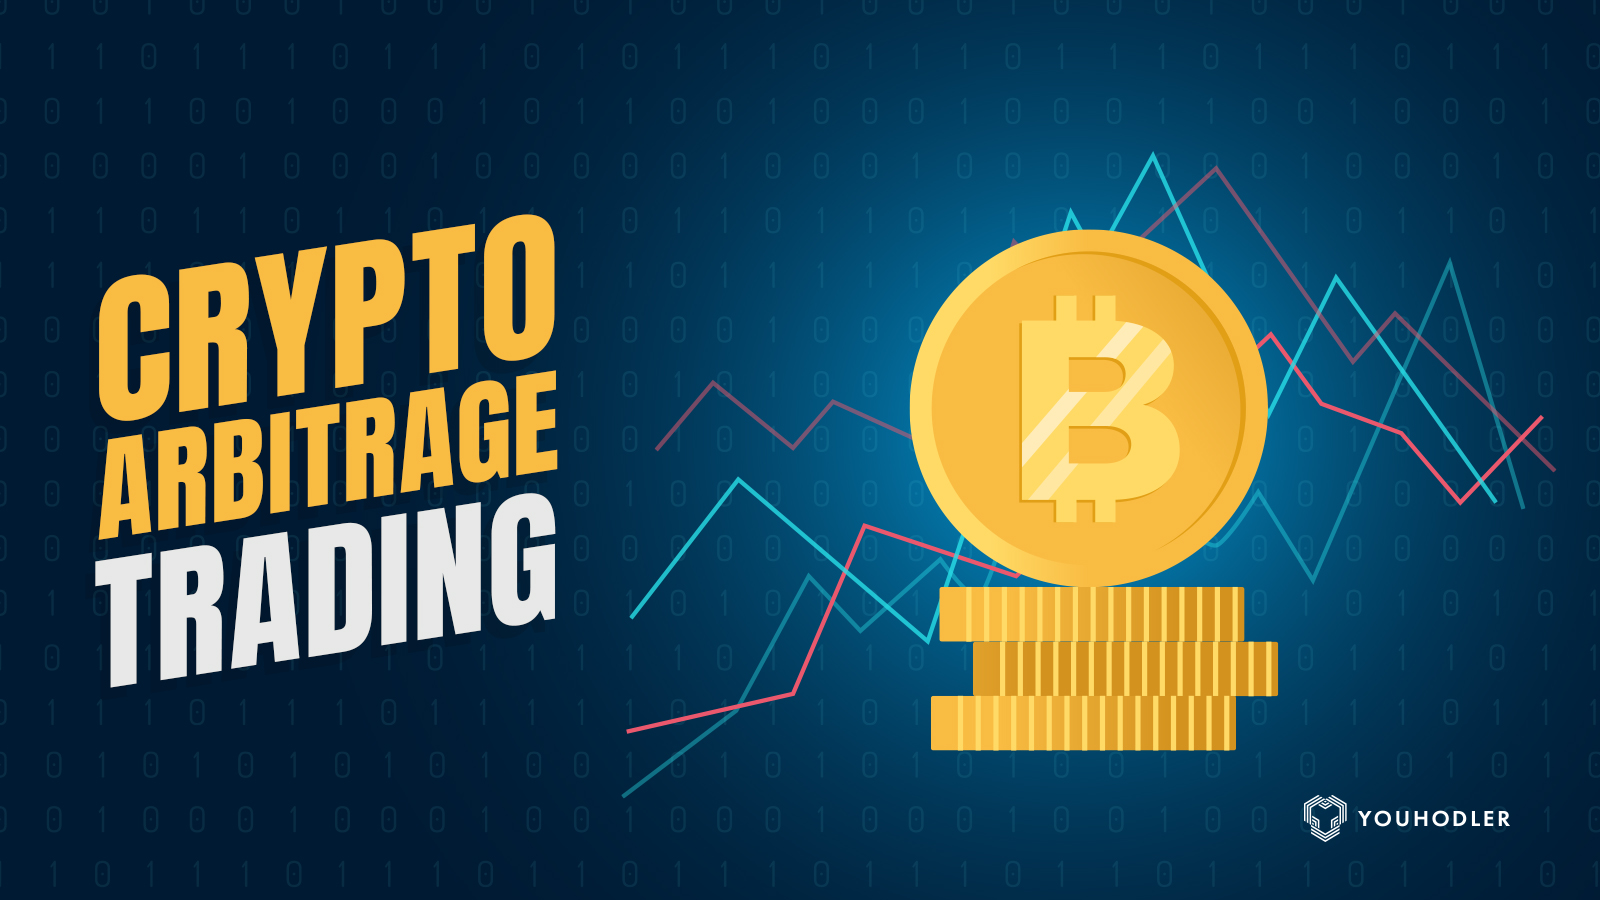 crypto trading, trading, bitcoin trading, trade BTC, borrow BTC, buy BTC